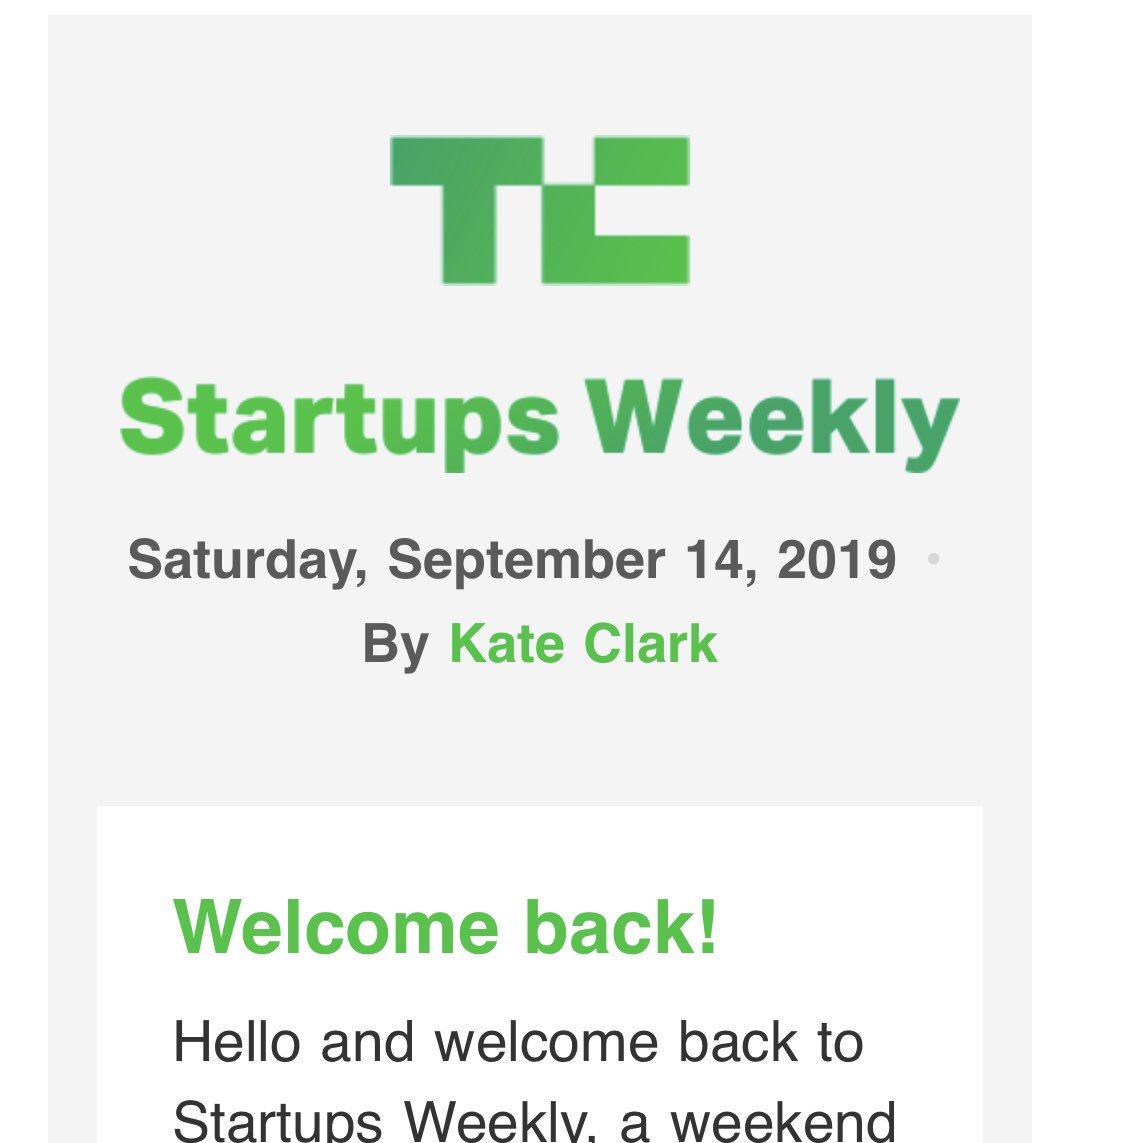 Newsletter subscribers may notice Startups Weekly has a new look today. Let me know what you think. As always, you can read the newsletter on http://TechCrunch.com too: https://techcrunch.com/2019/09/14/startups-weekly-part-parcel/…